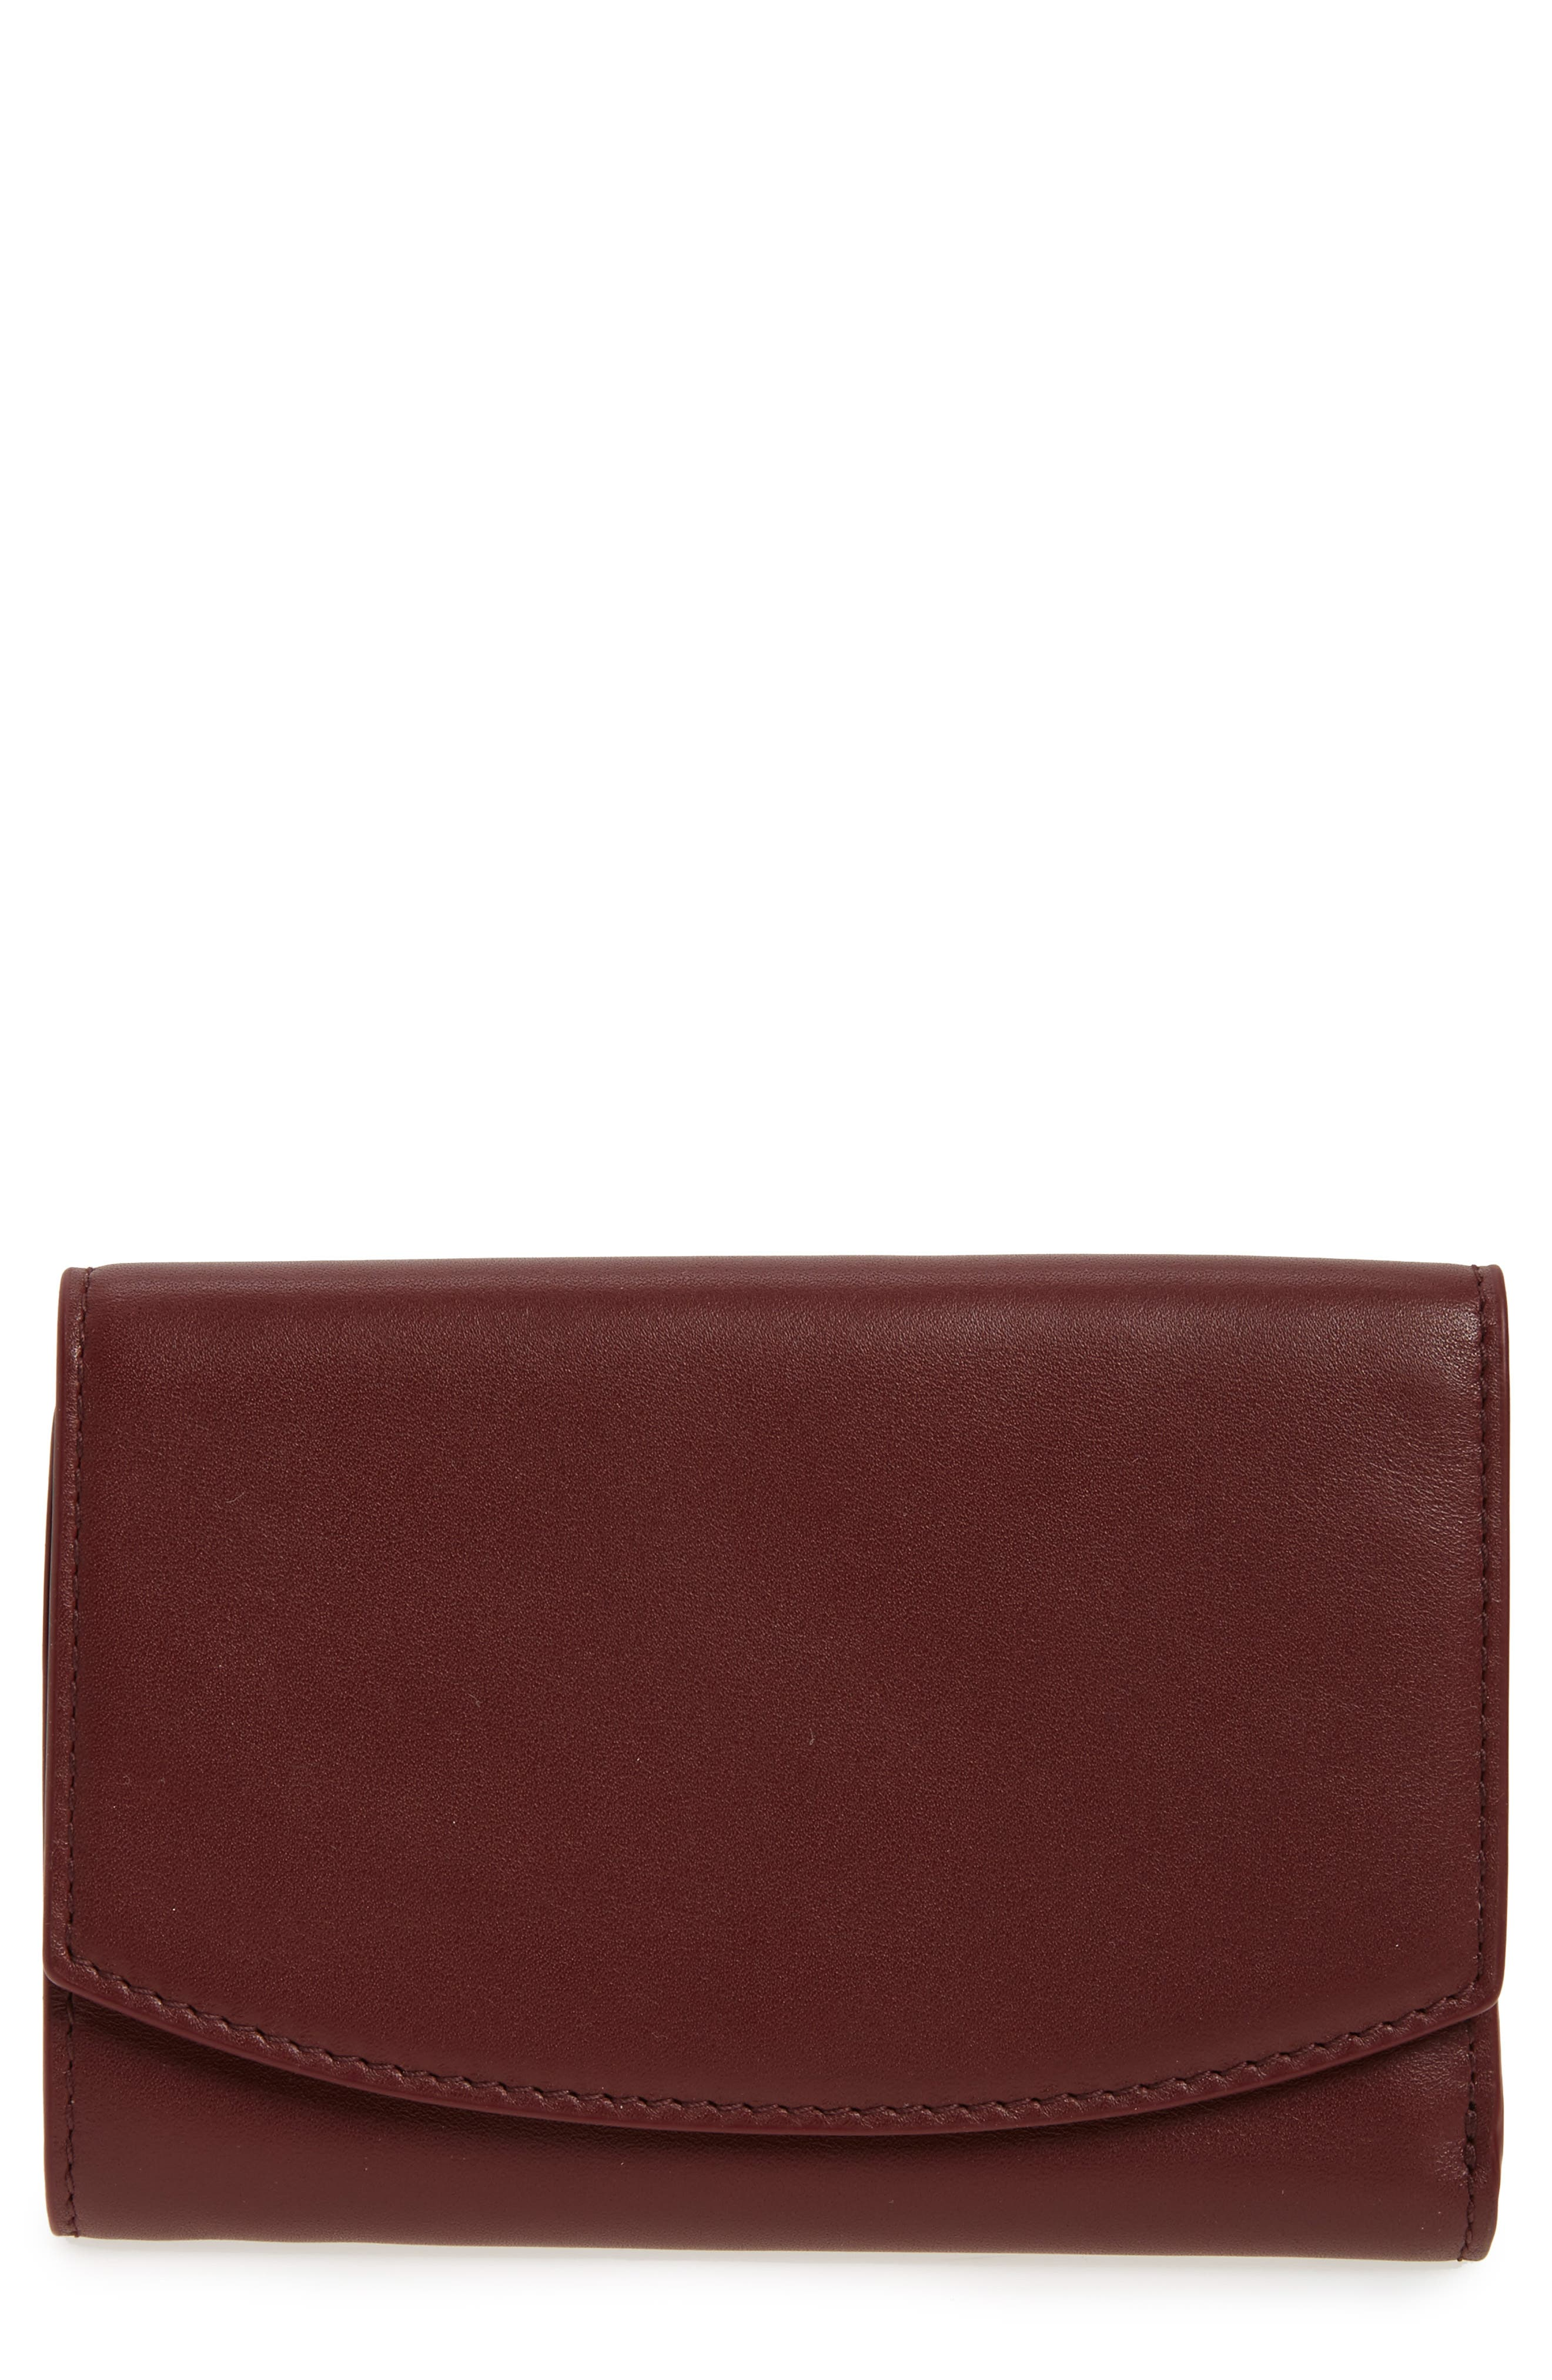 Compact Flap Leather Wallet,                         Main,                         color, Cordovan